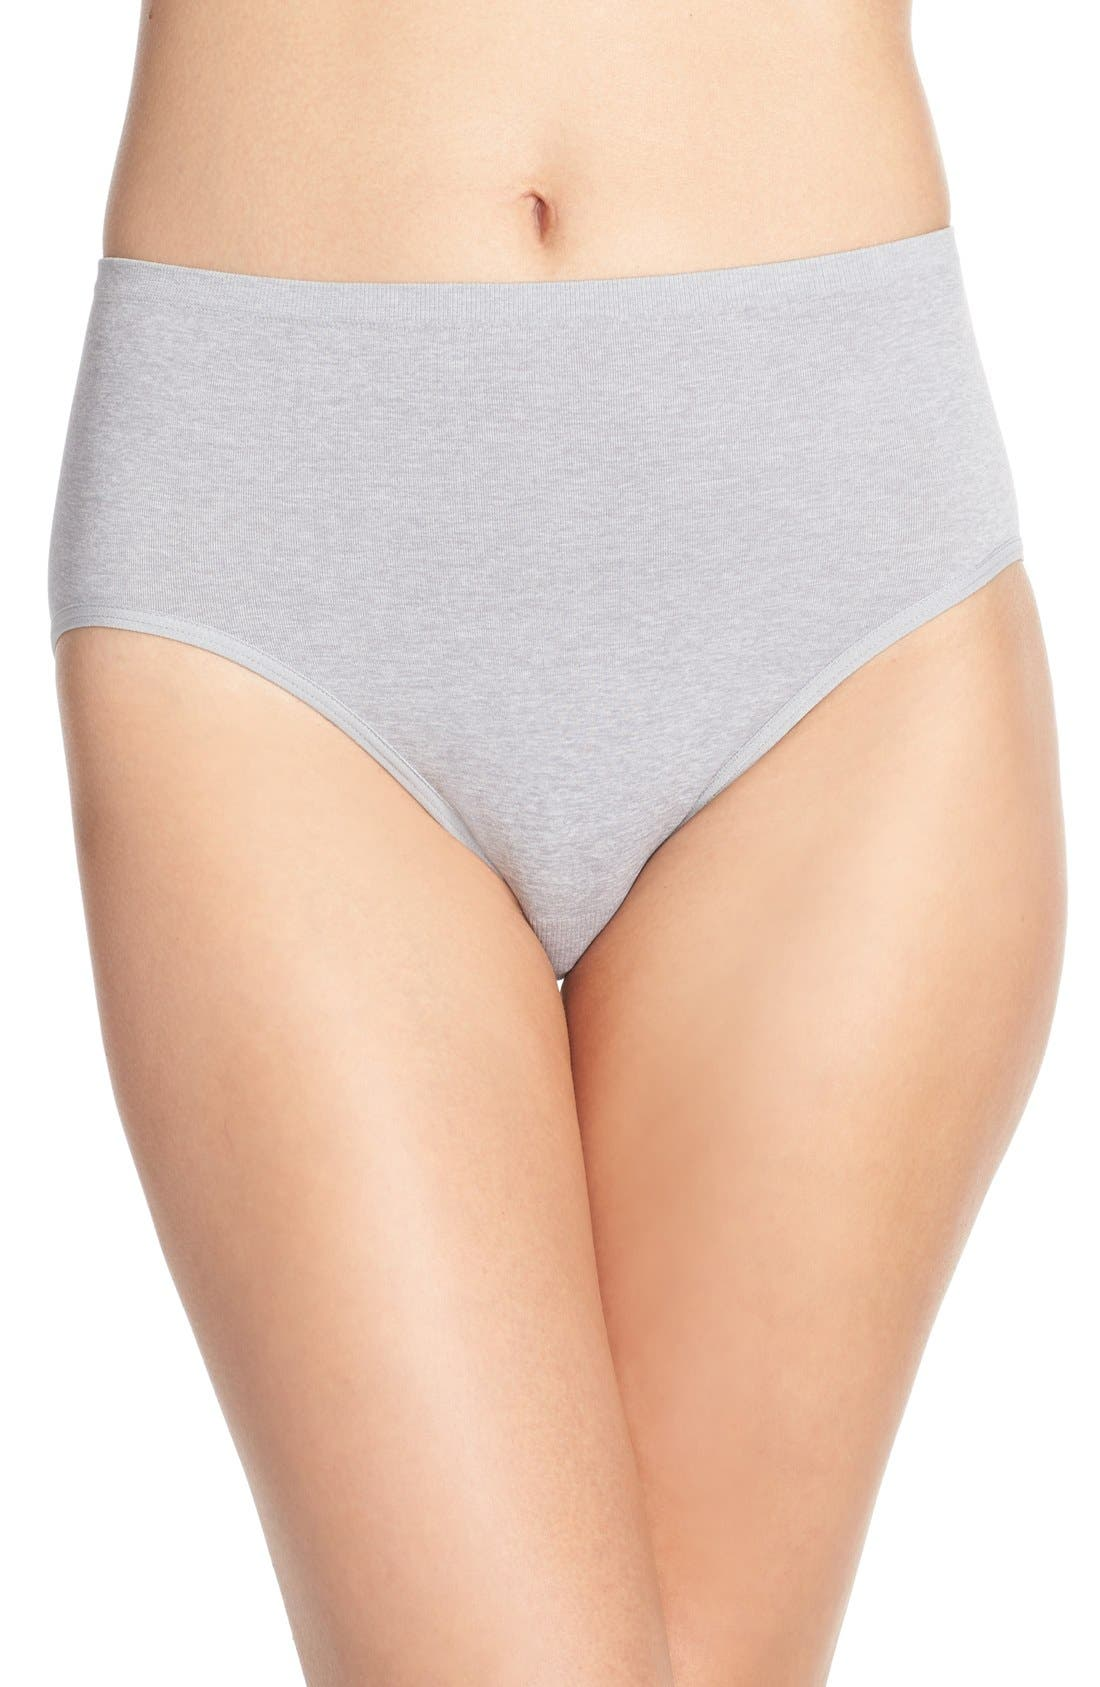 NORDSTROM LINGERIE Seamless Full Briefs